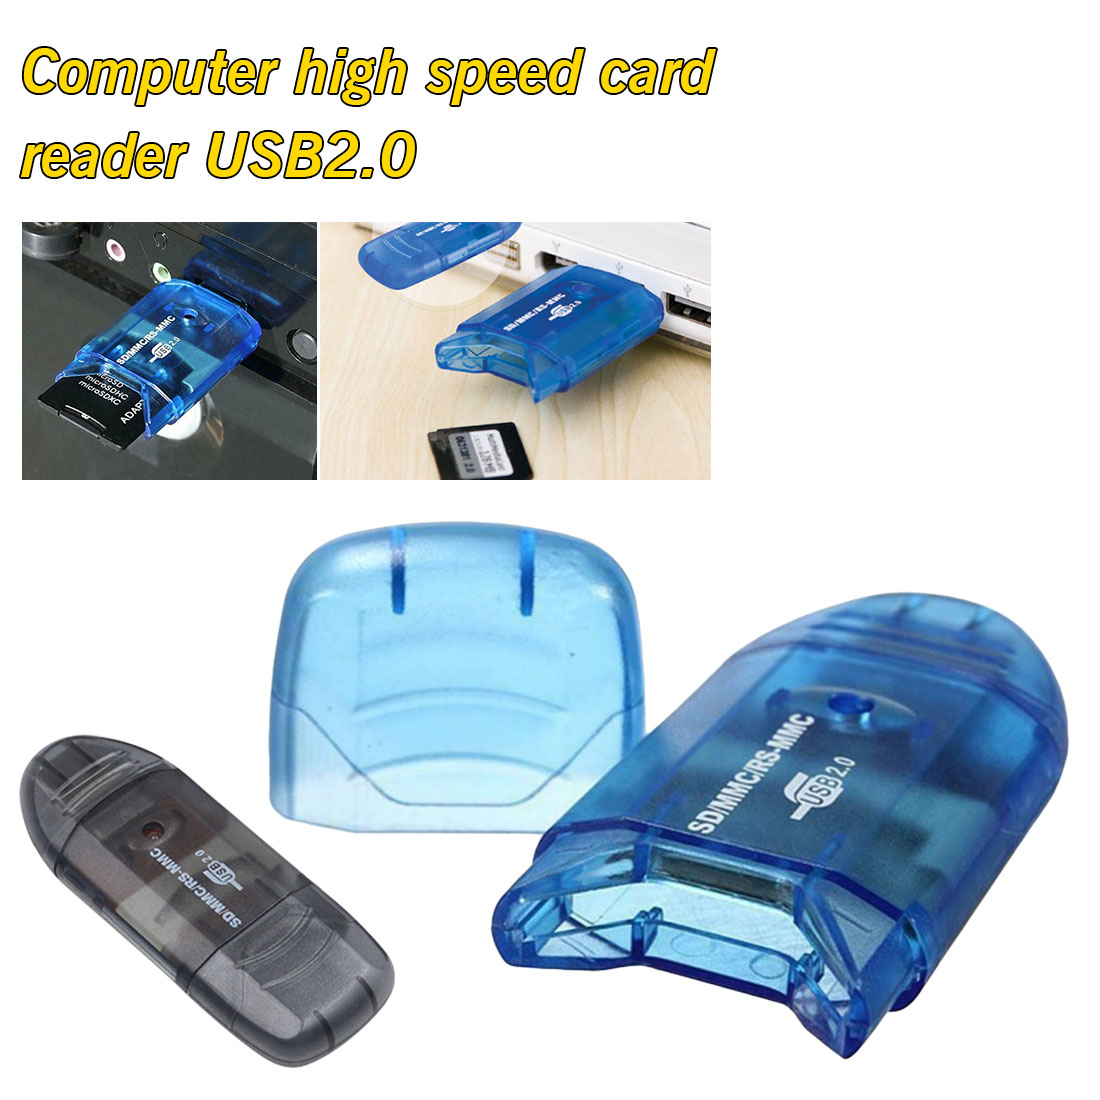 1 USB 2.0 Multi Memory Card Reader Adapter Connector For Micro SD MMC SDHC TF M2 Memory Stick MS Duo RS-MMC